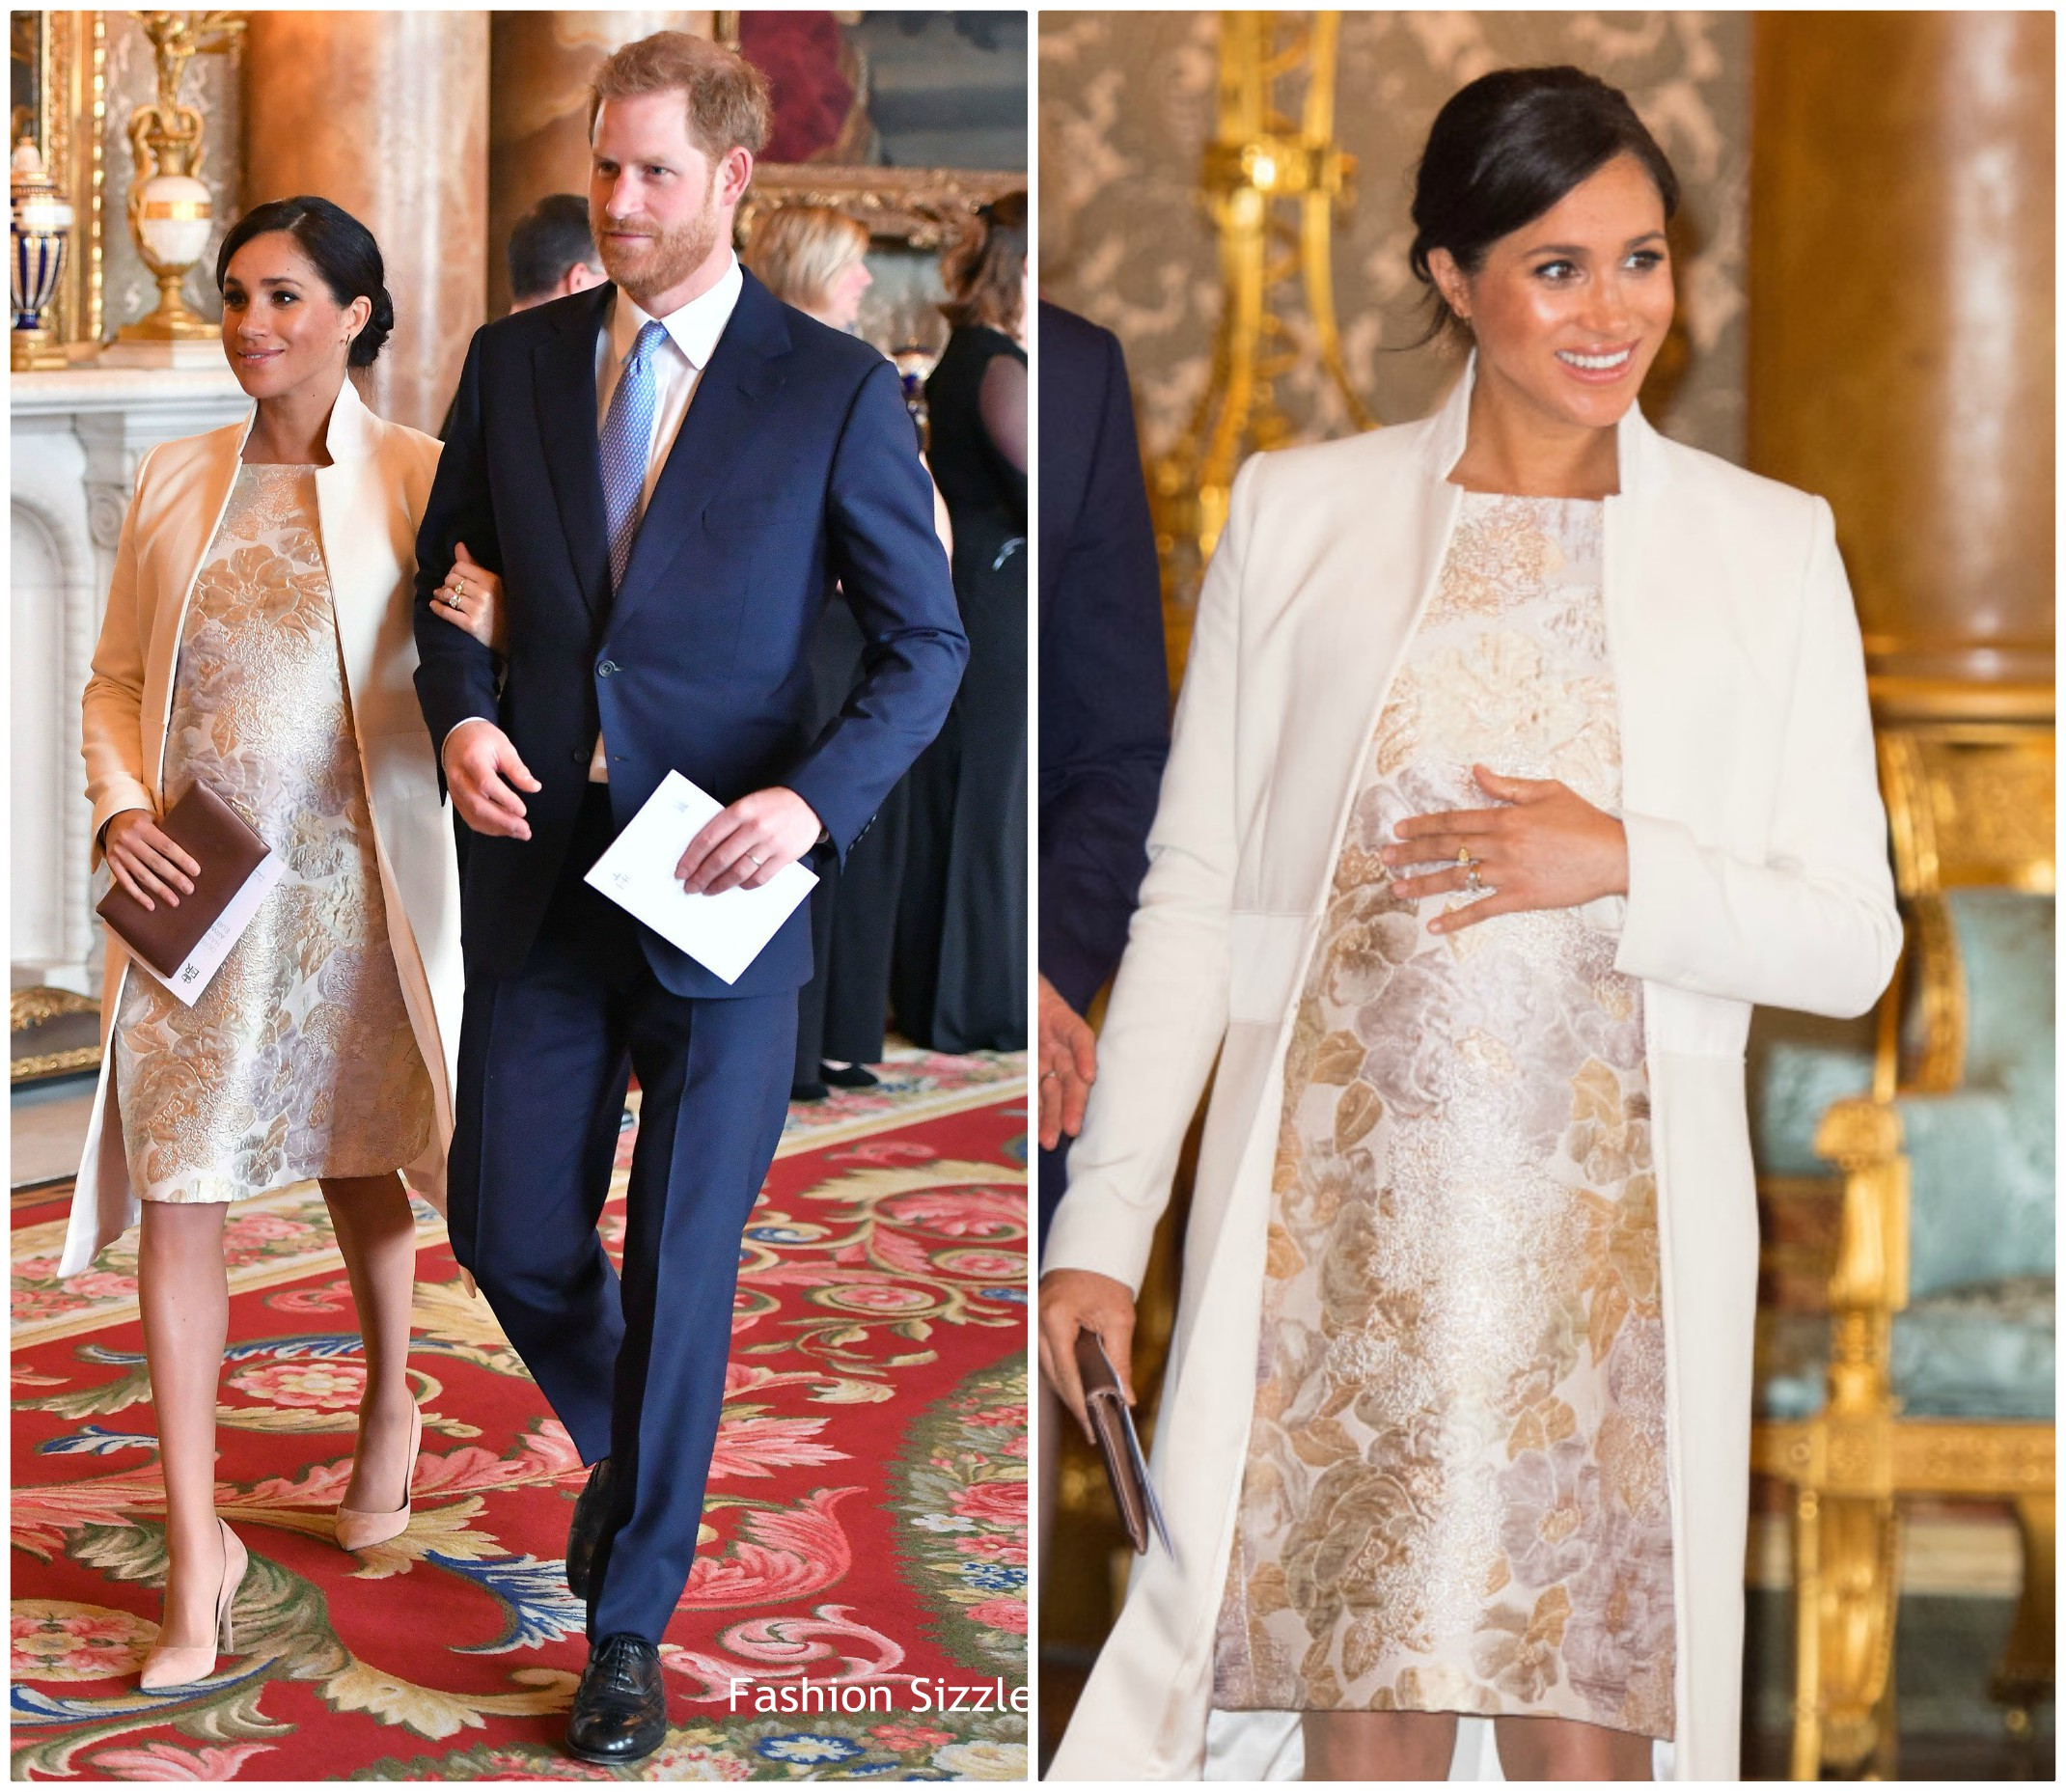 meghan-duchess-of-sussex-in-amanda-wakeley-the-50th-anniversary-of-the-investiture-of-the-prince-of-wales